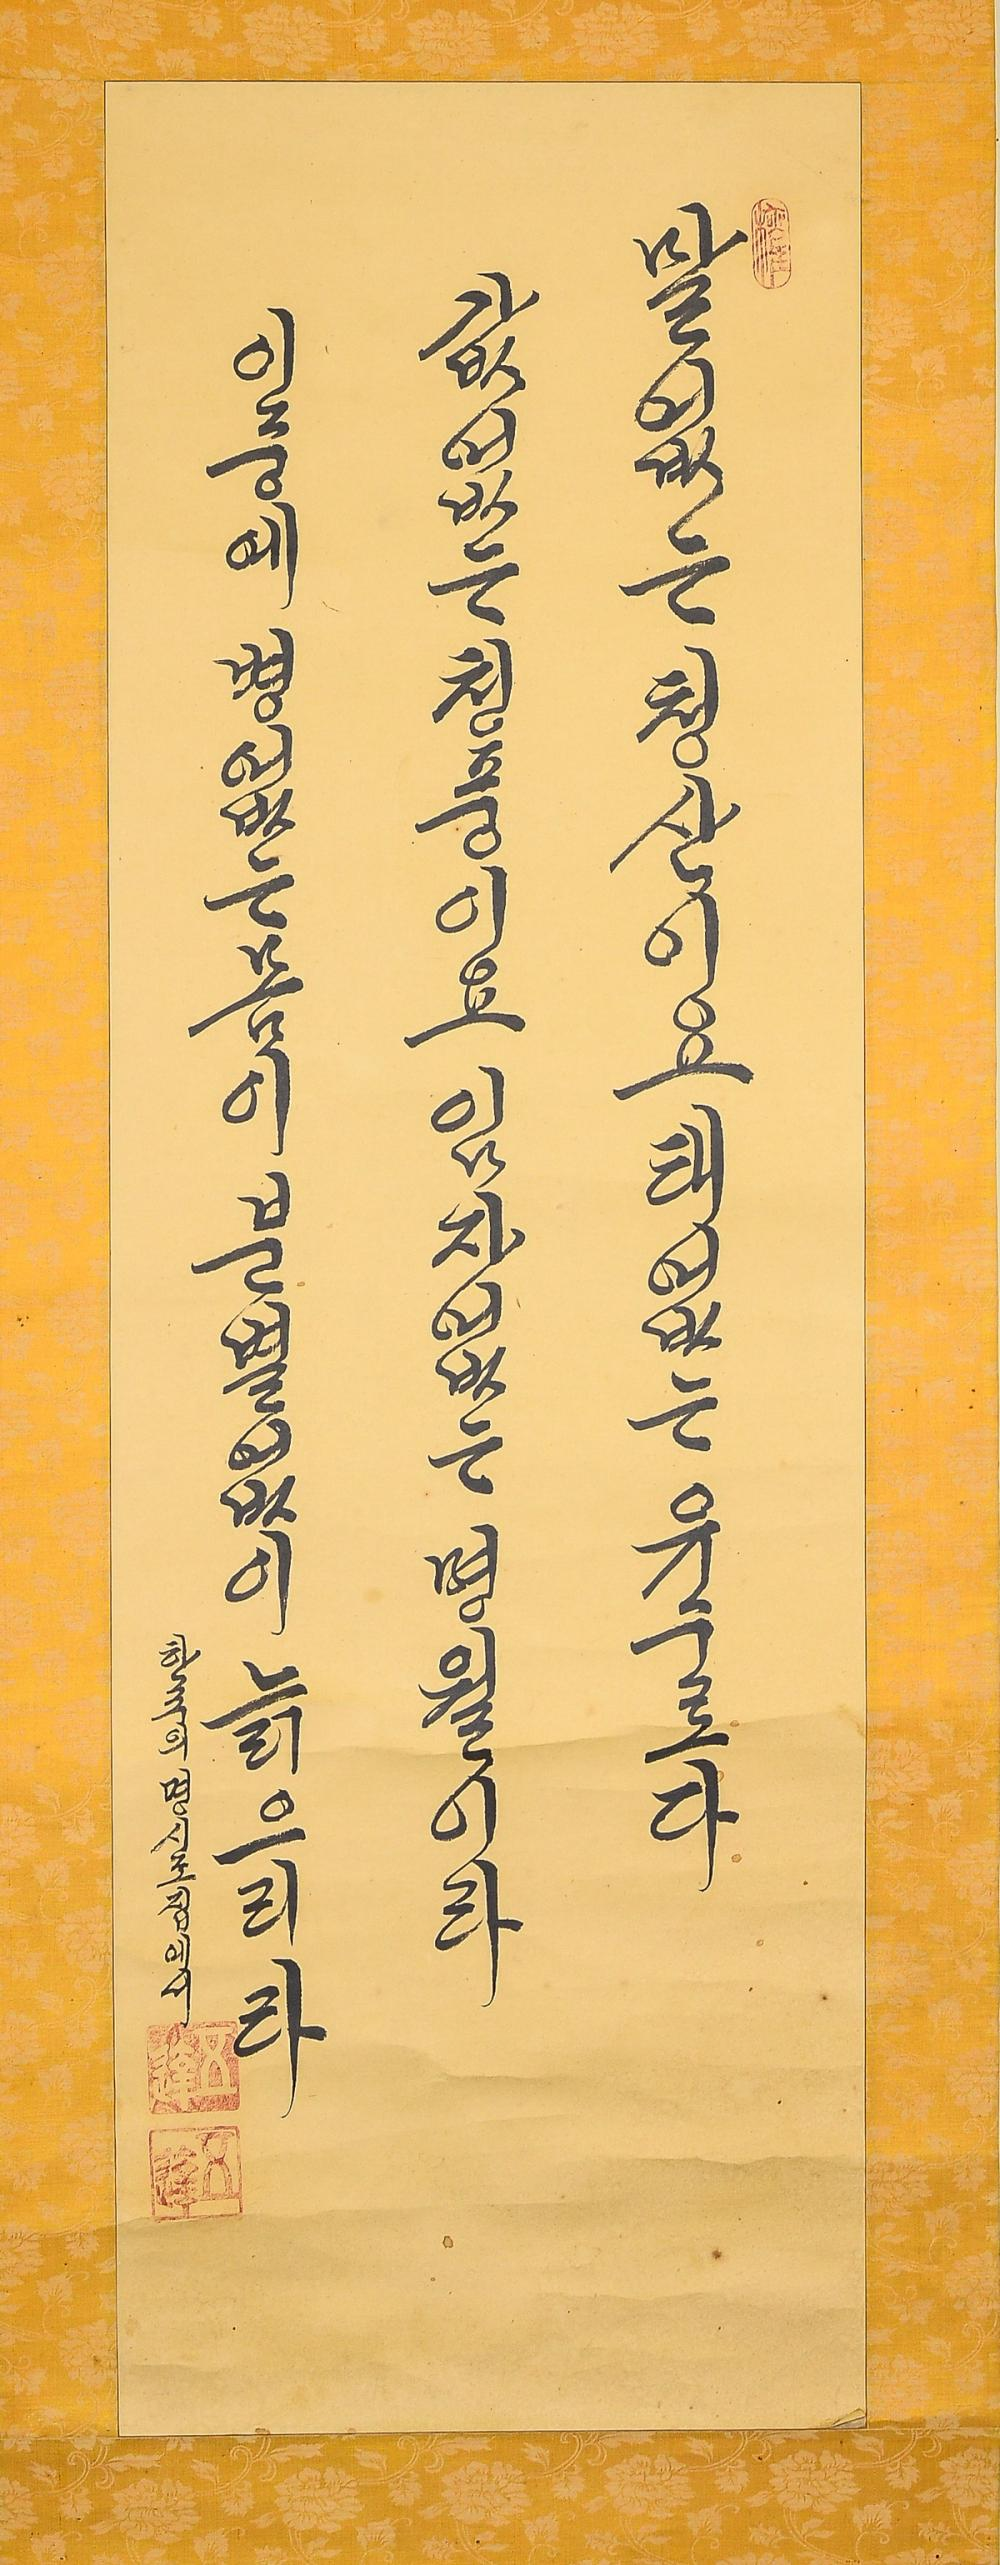 Lot 151: Korean Ink Calligraphy Scroll Signed by Artist